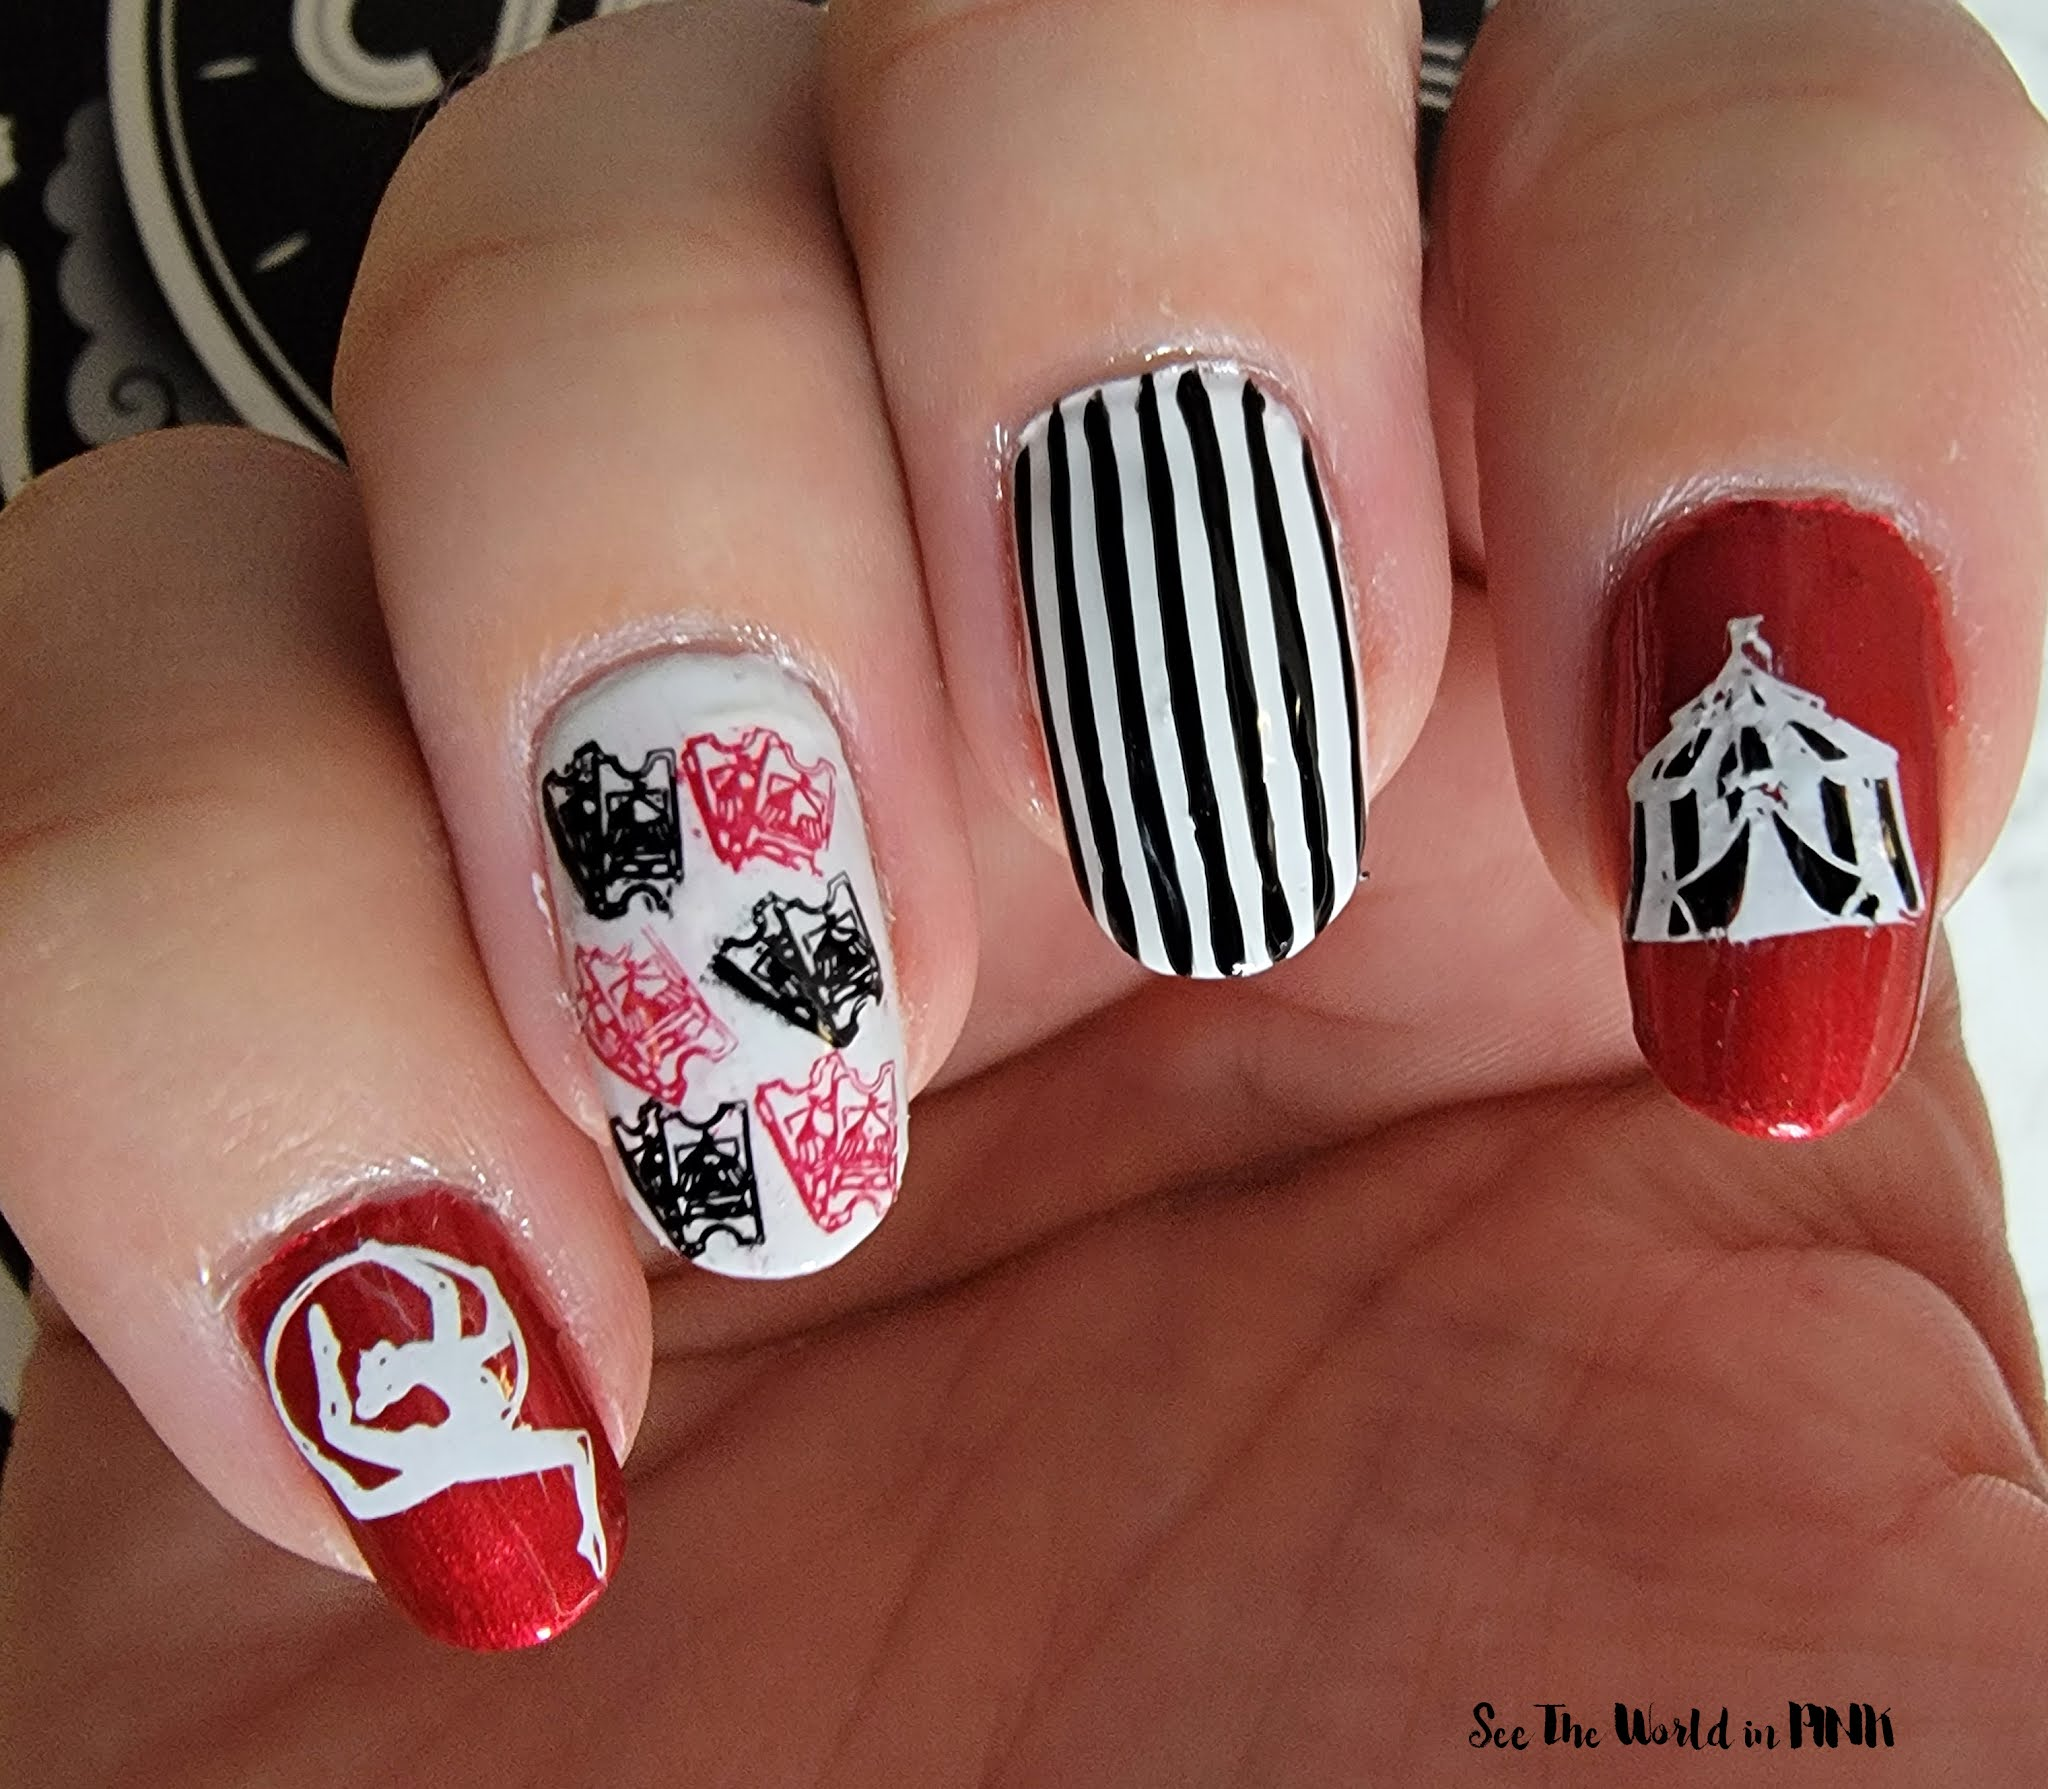 Manicure Monday - The Night Circus Nails